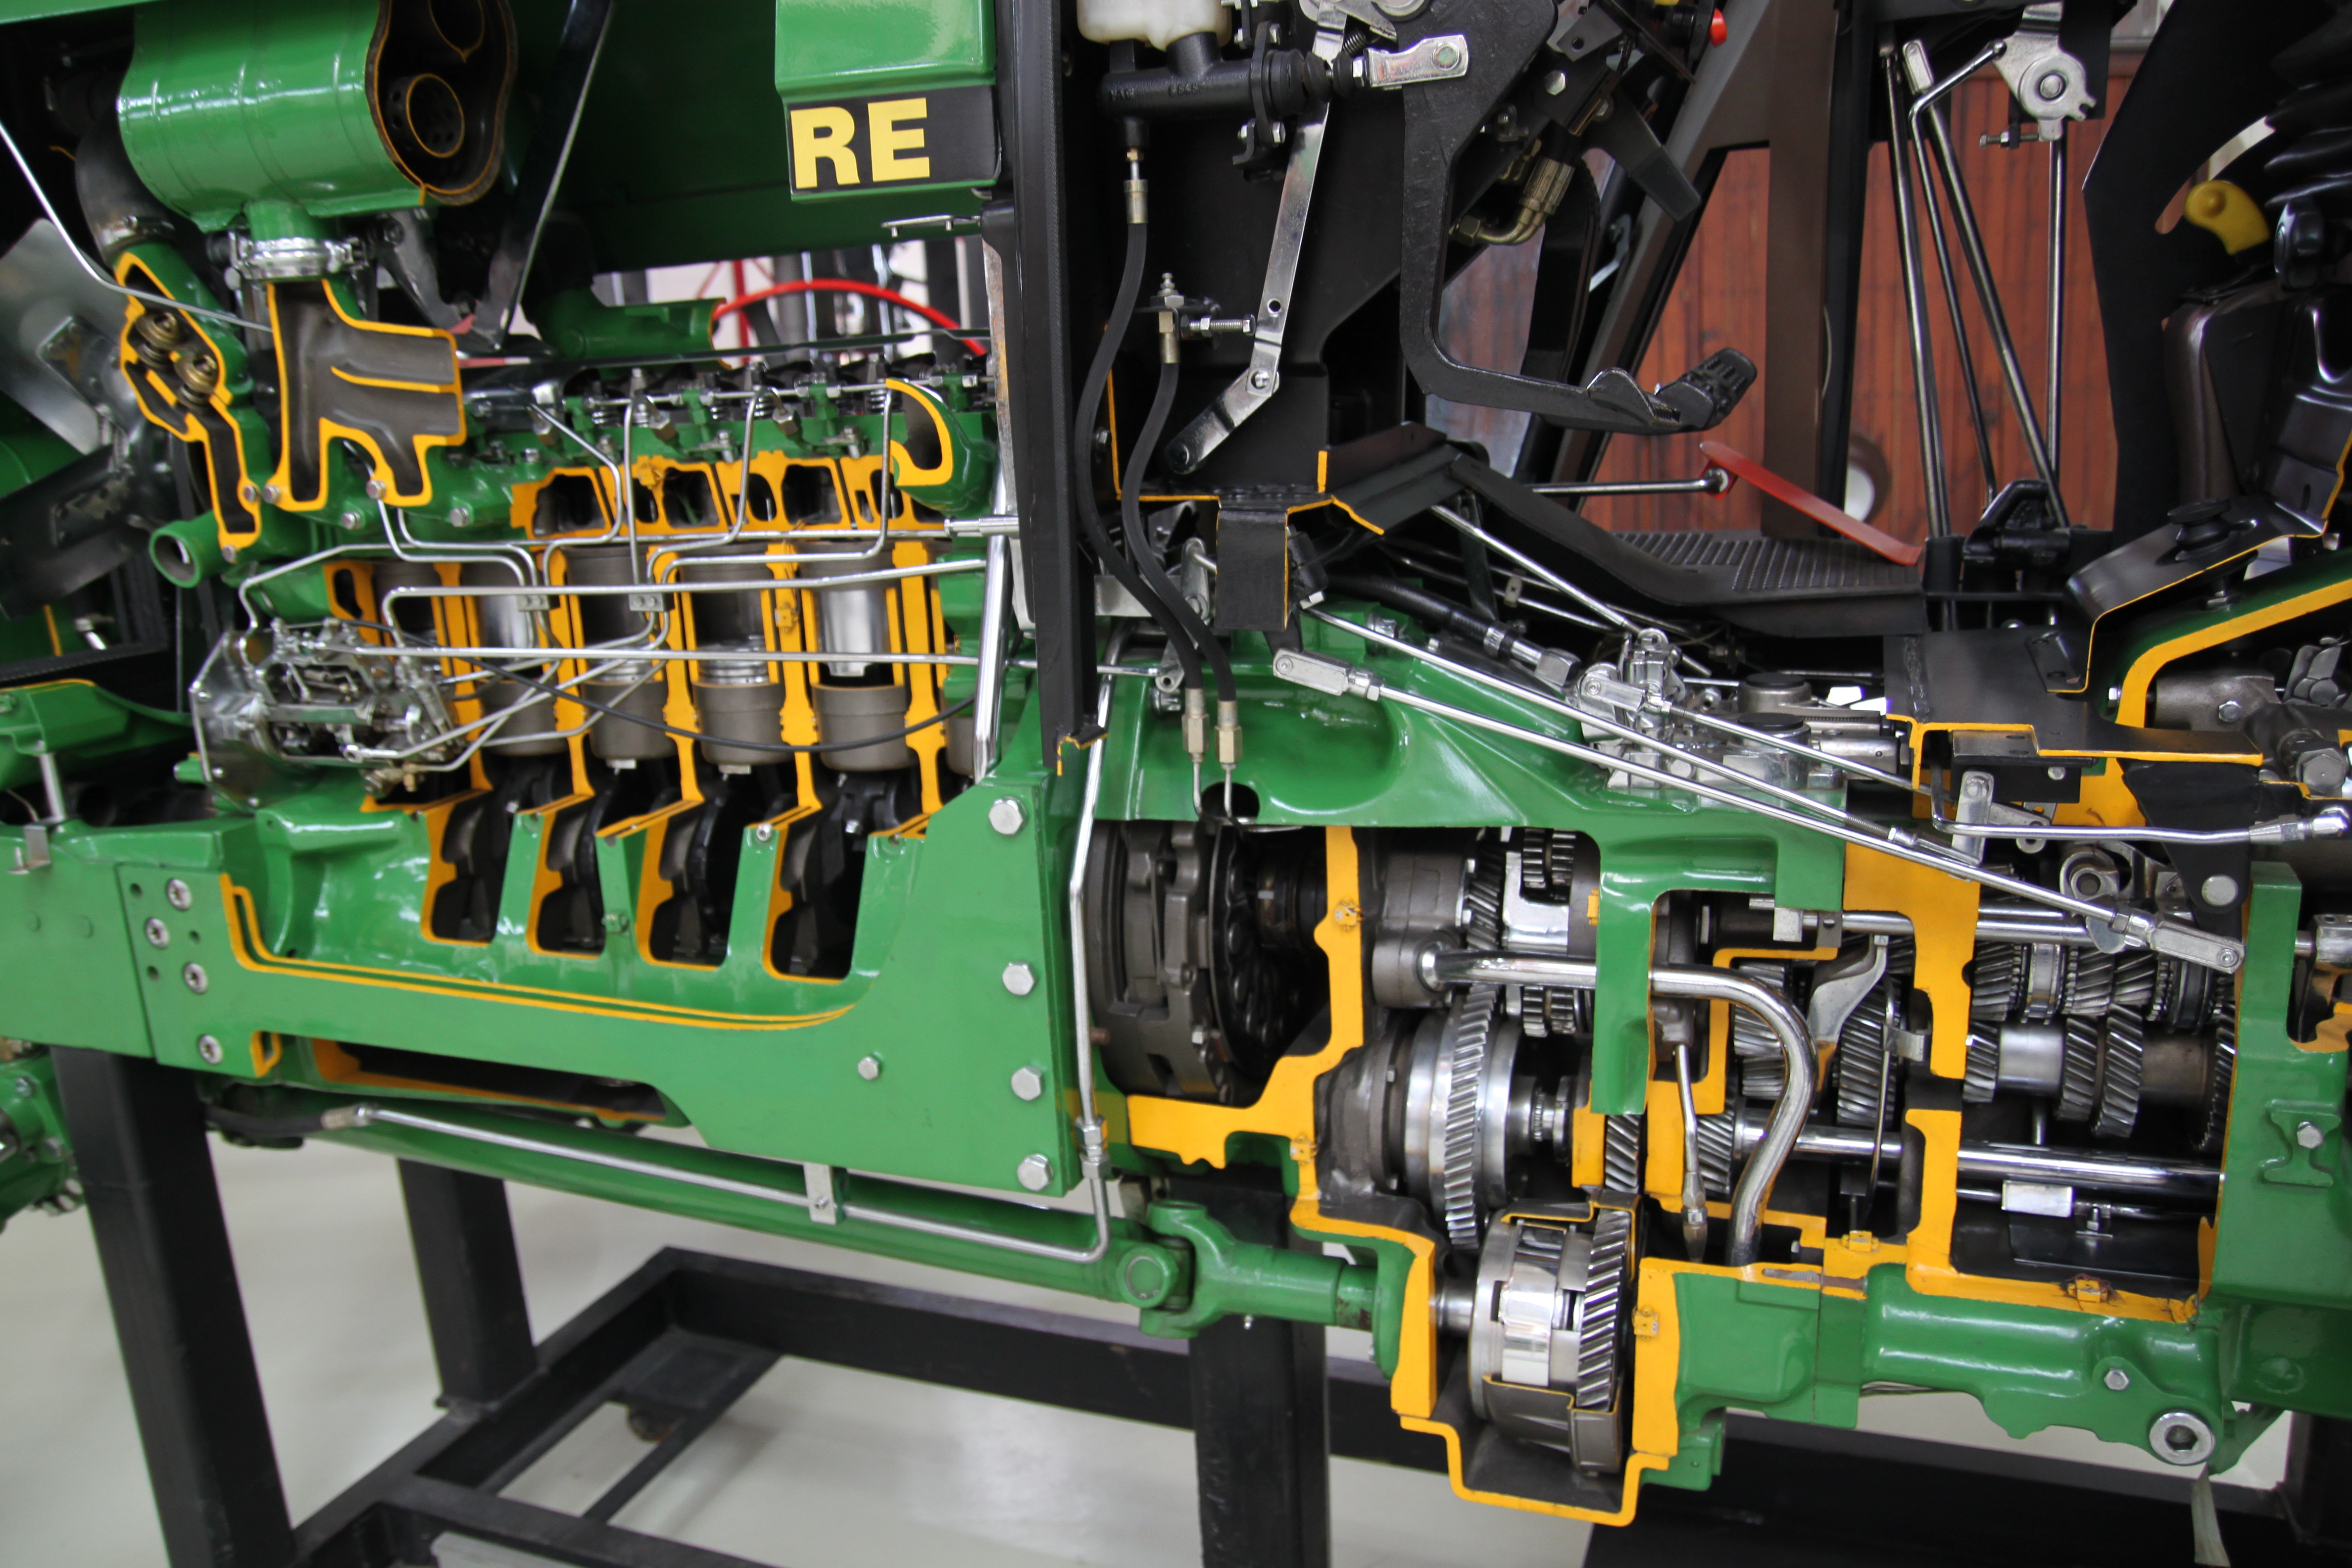 Cutaway of a John Deere 3350 tractor transmission with 16 forward